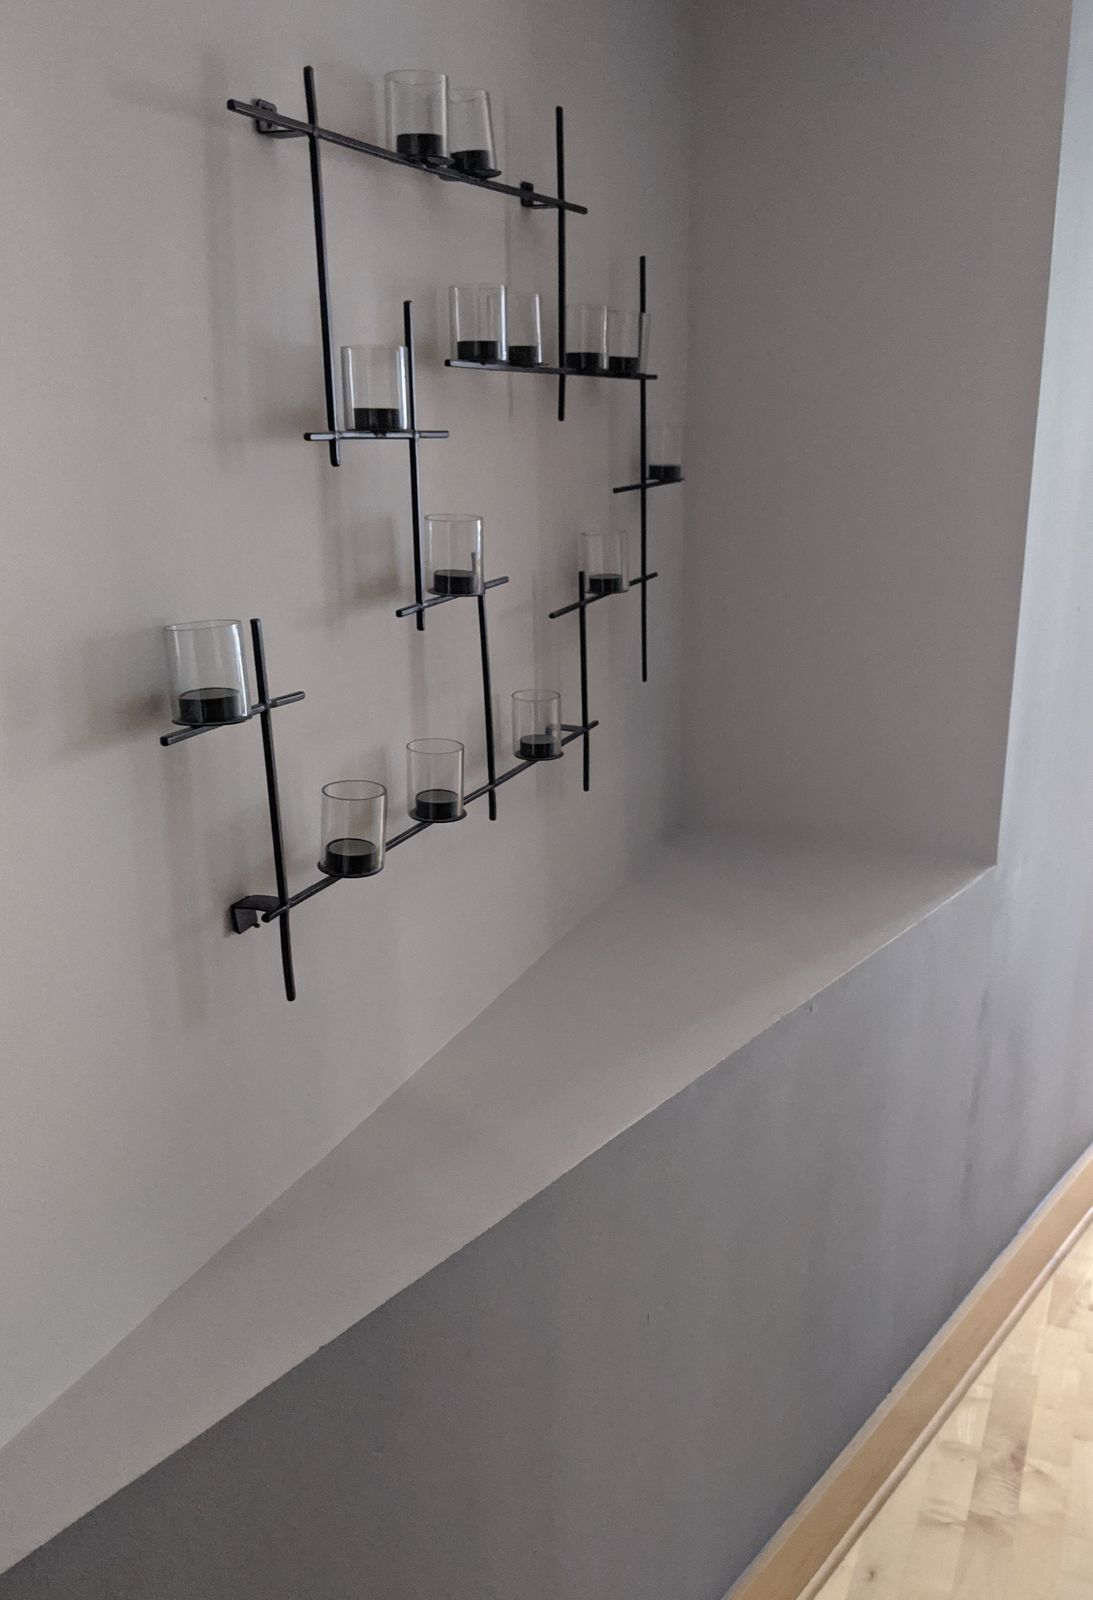 This falls under #1: I don't want to repaint the white area, so this is not a shelf.